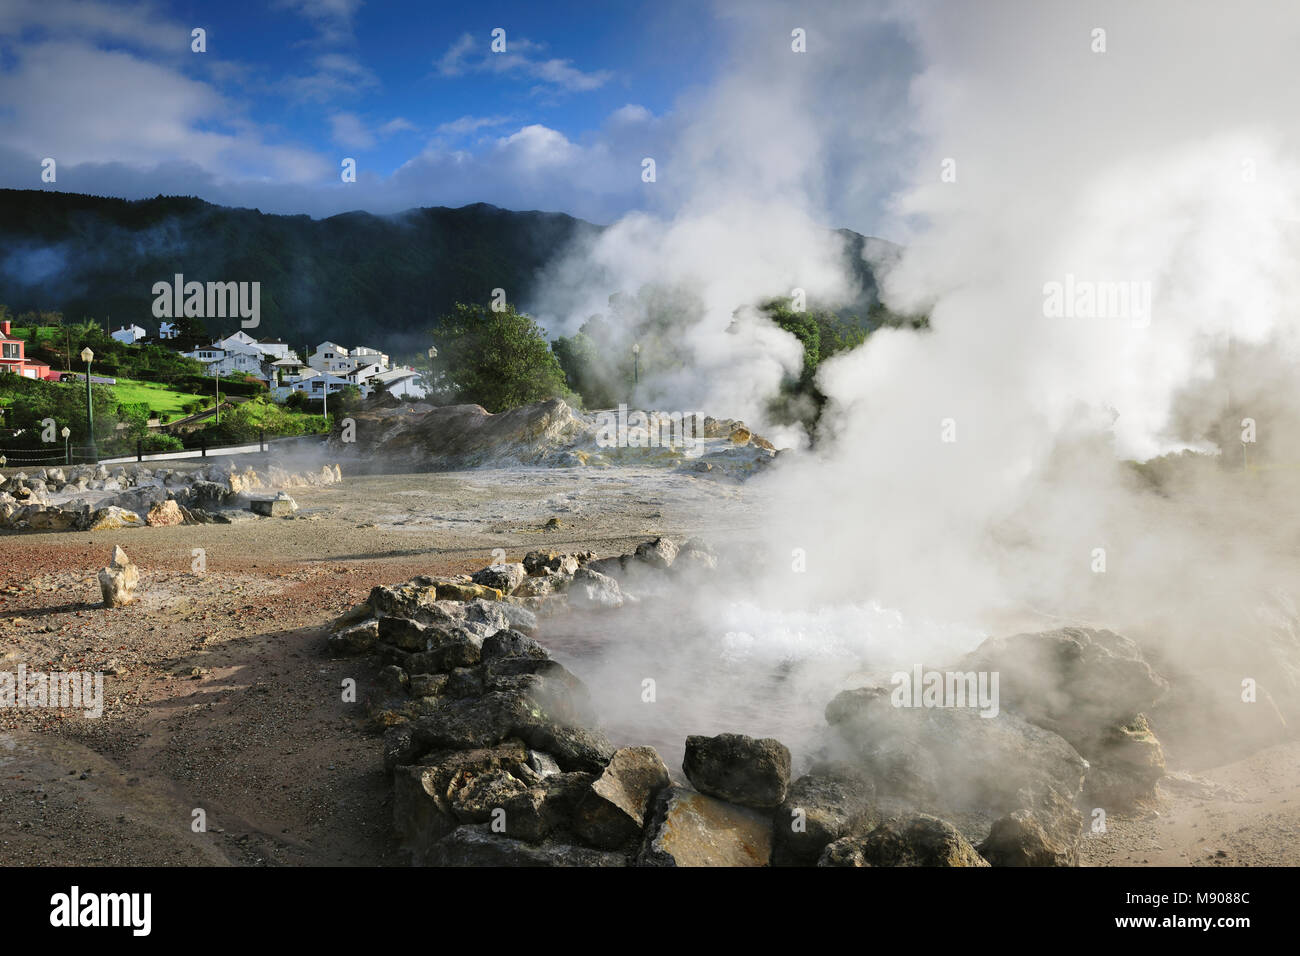 Volcanic activity with boiling mud and water at Furnas. São Miguel, Azores islands. Portugal - Stock Image